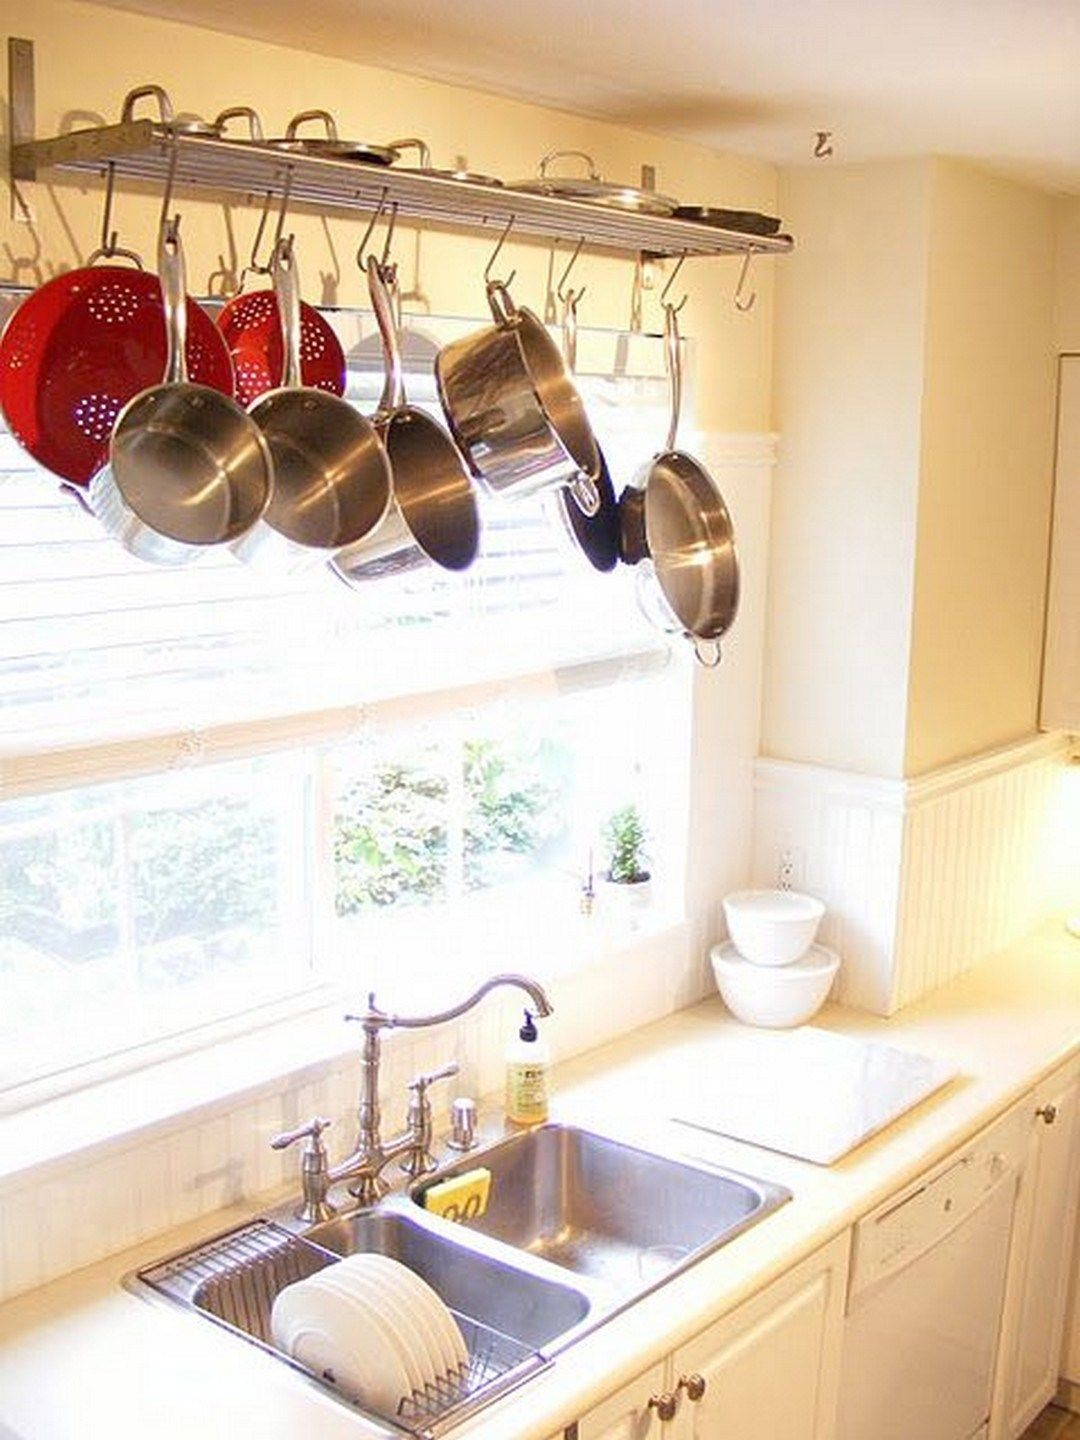 48 tips for kitchen organizing pots and pans 34 with images kitchen decor hacks kitchen on kitchen organization pots and pans id=38056